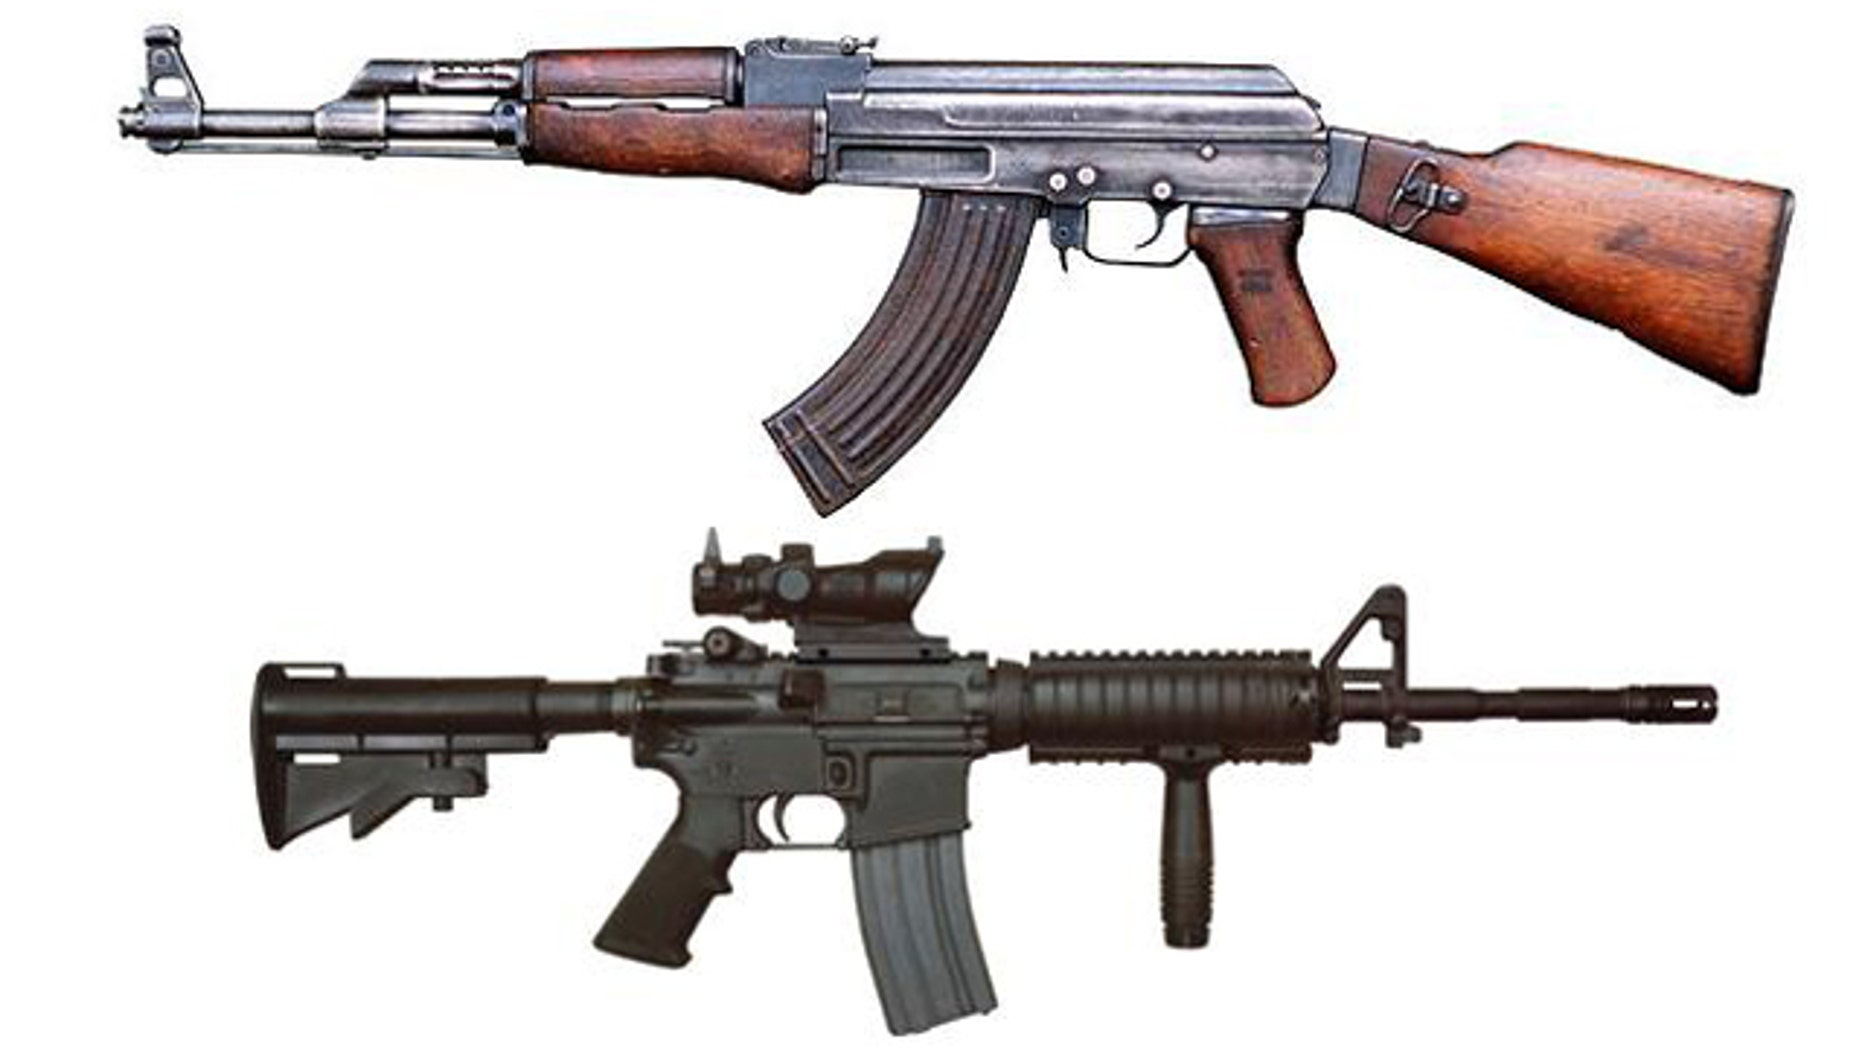 The AK-47 (top) and M4 (bottom) rifles.